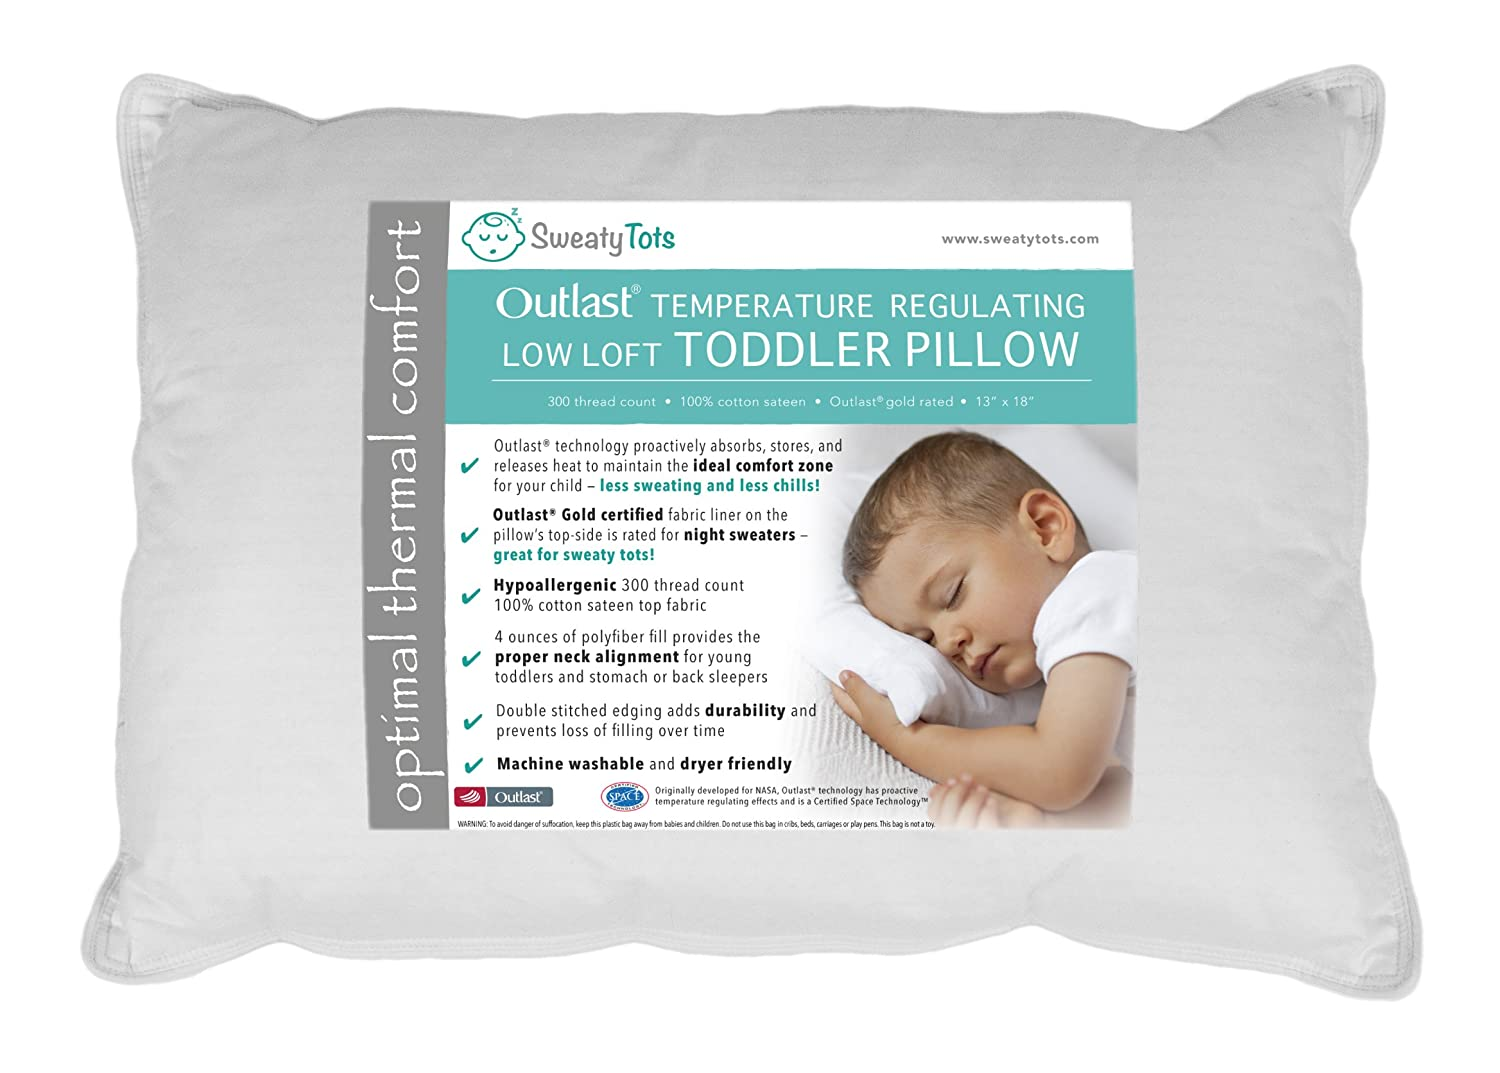 Toddler Pillow for Hot Or Sweaty Sleepers - 13 x 18, White, 300TC Cotton Sateen, Features Outlast(R) Temperature Regulating Technology to Reduce Overheating (Low Loft) Sweaty Tots